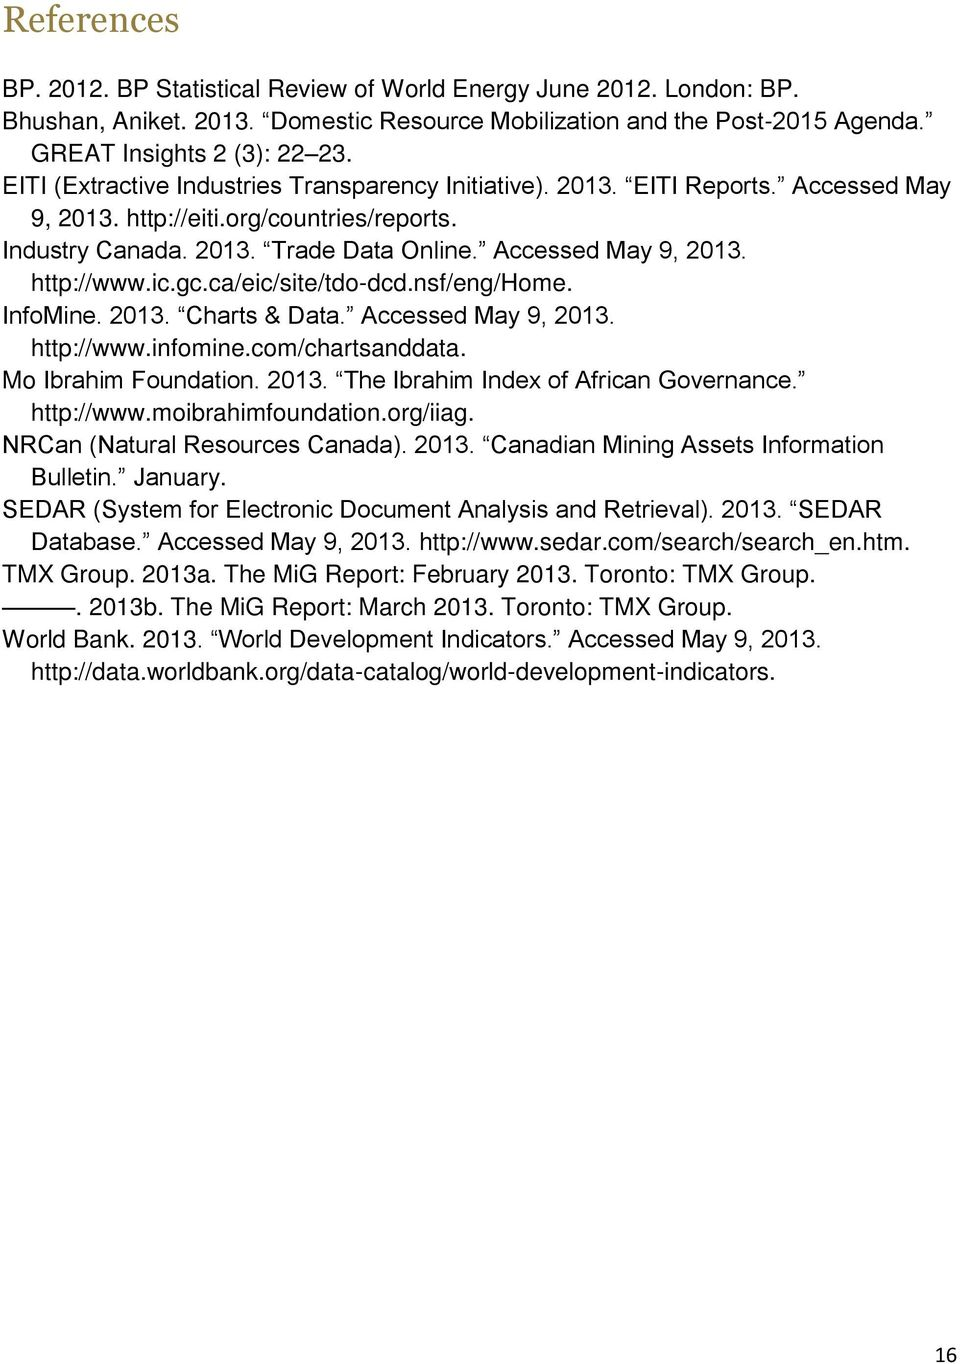 ic.gc.ca/eic/site/tdo-dcd.nsf/eng/home. InfoMine. 2013. Charts & Data. Accessed May 9, 2013. http://www.infomine.com/chartsanddata. Mo Ibrahim Foundation. 2013. The Ibrahim Index of African Governance.